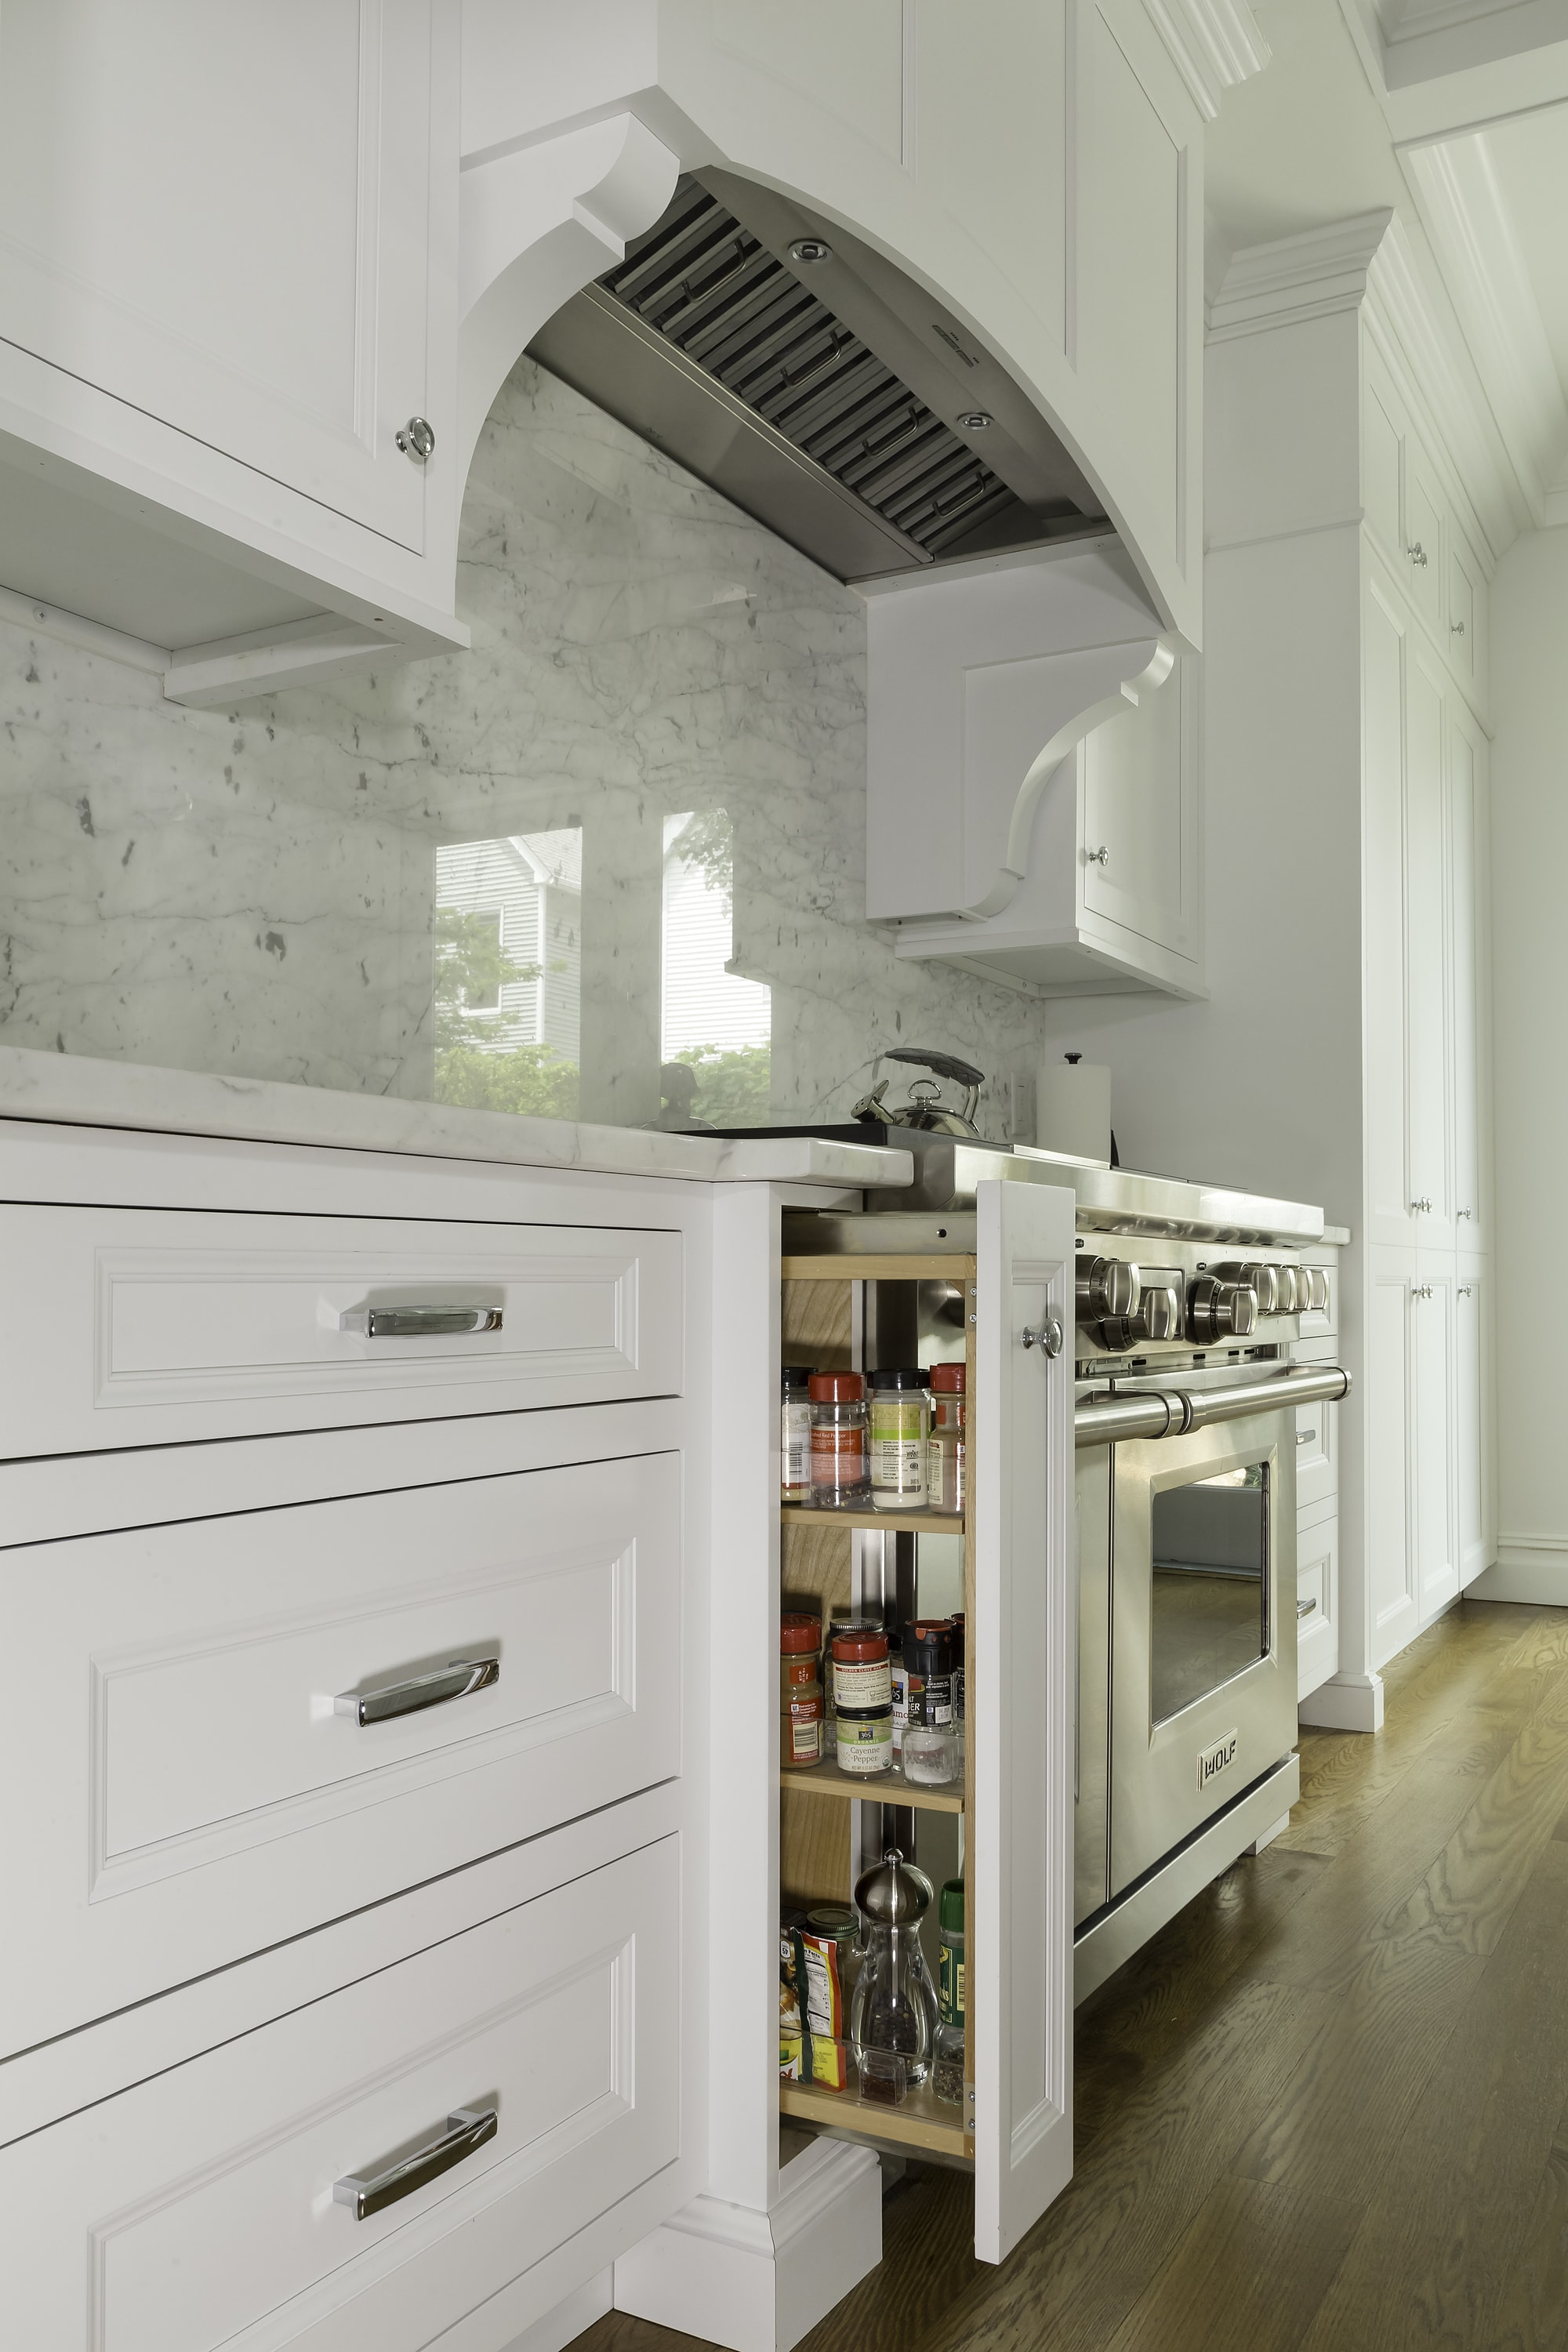 Transitional style kitchen with space saving storage